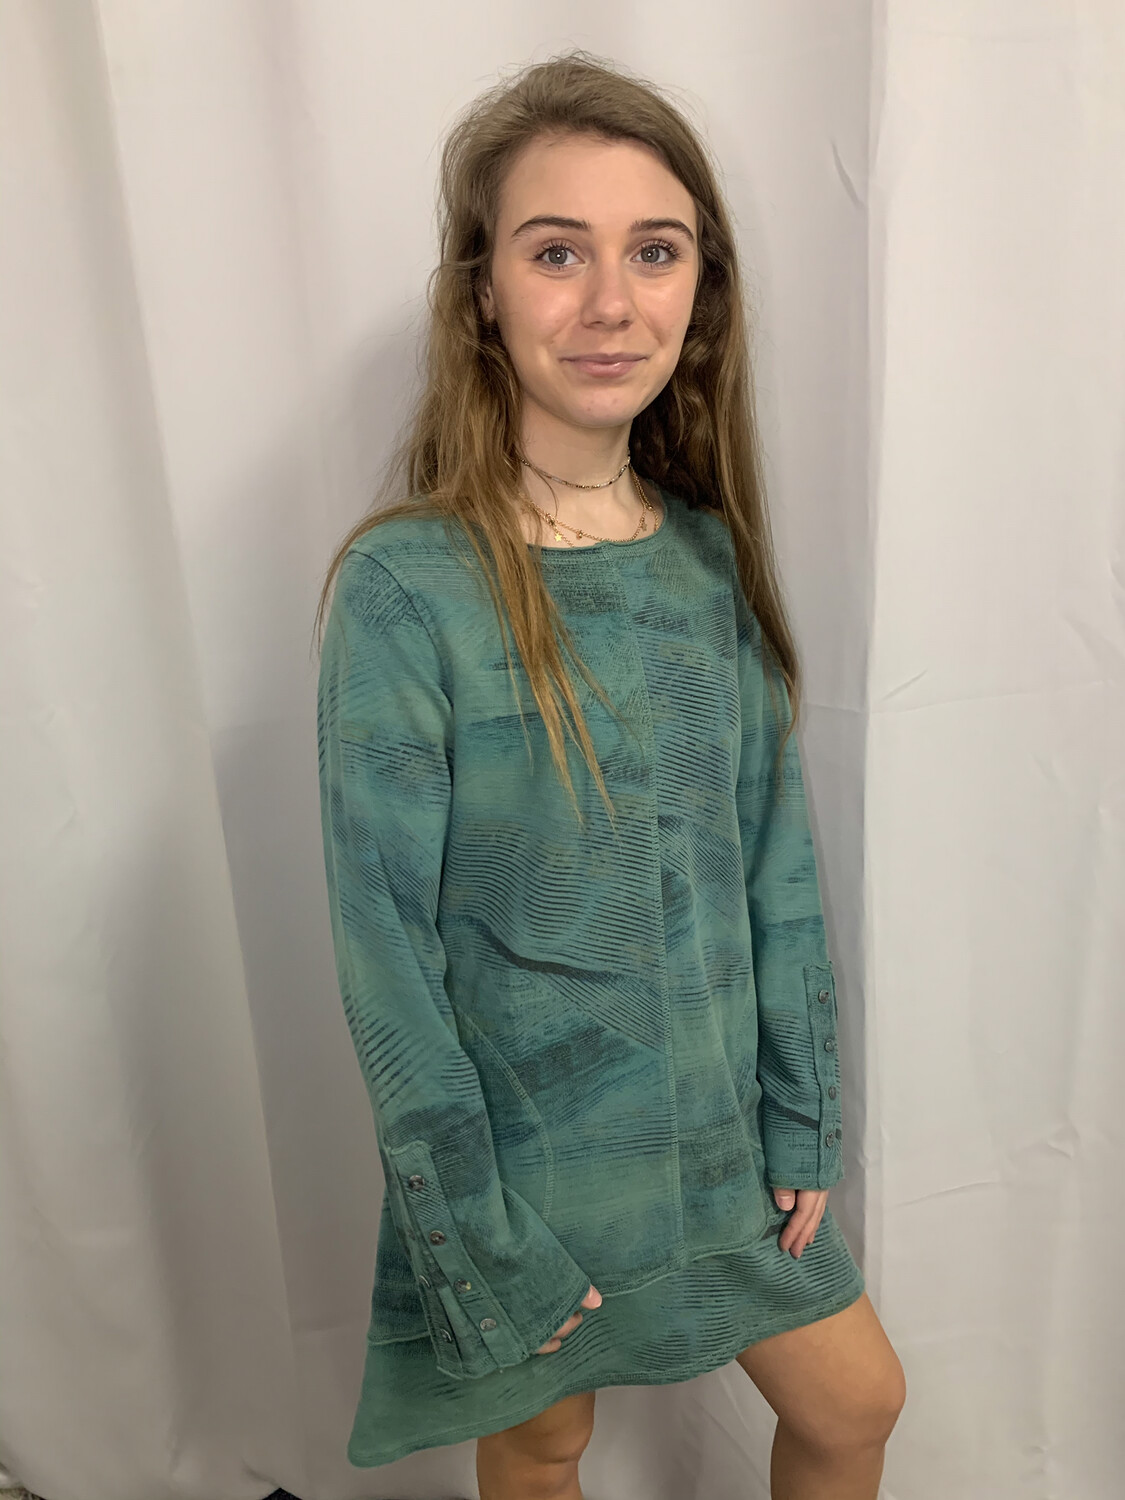 C.M.C. Green Patterned Pullover - XS